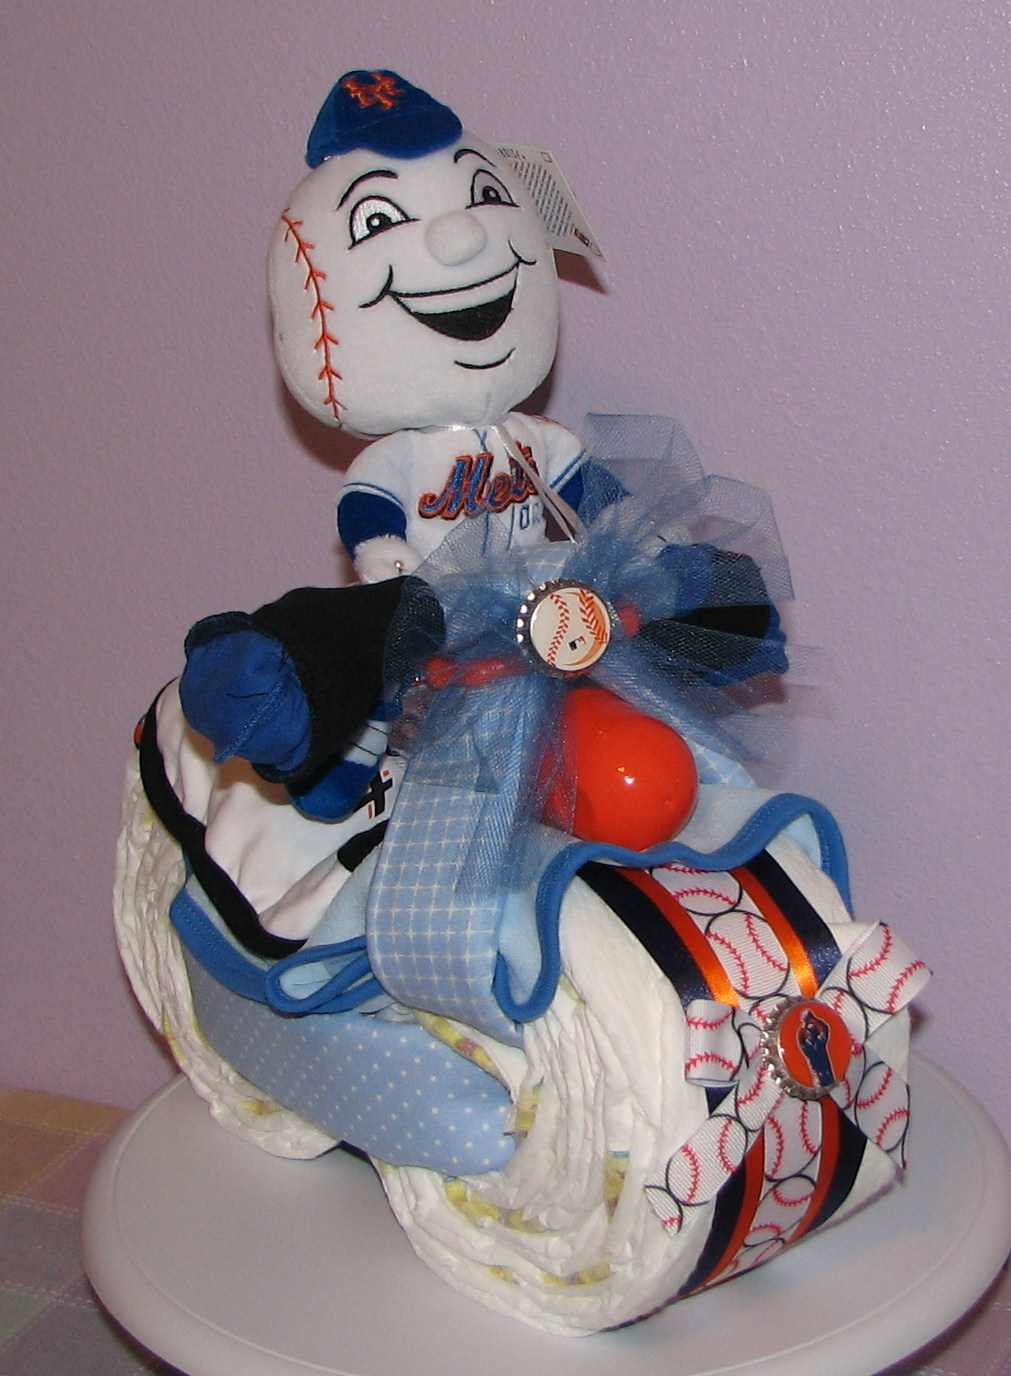 Mets-Diaper-Motorcycle.JPG - New York Mets Diaper Motorcycle